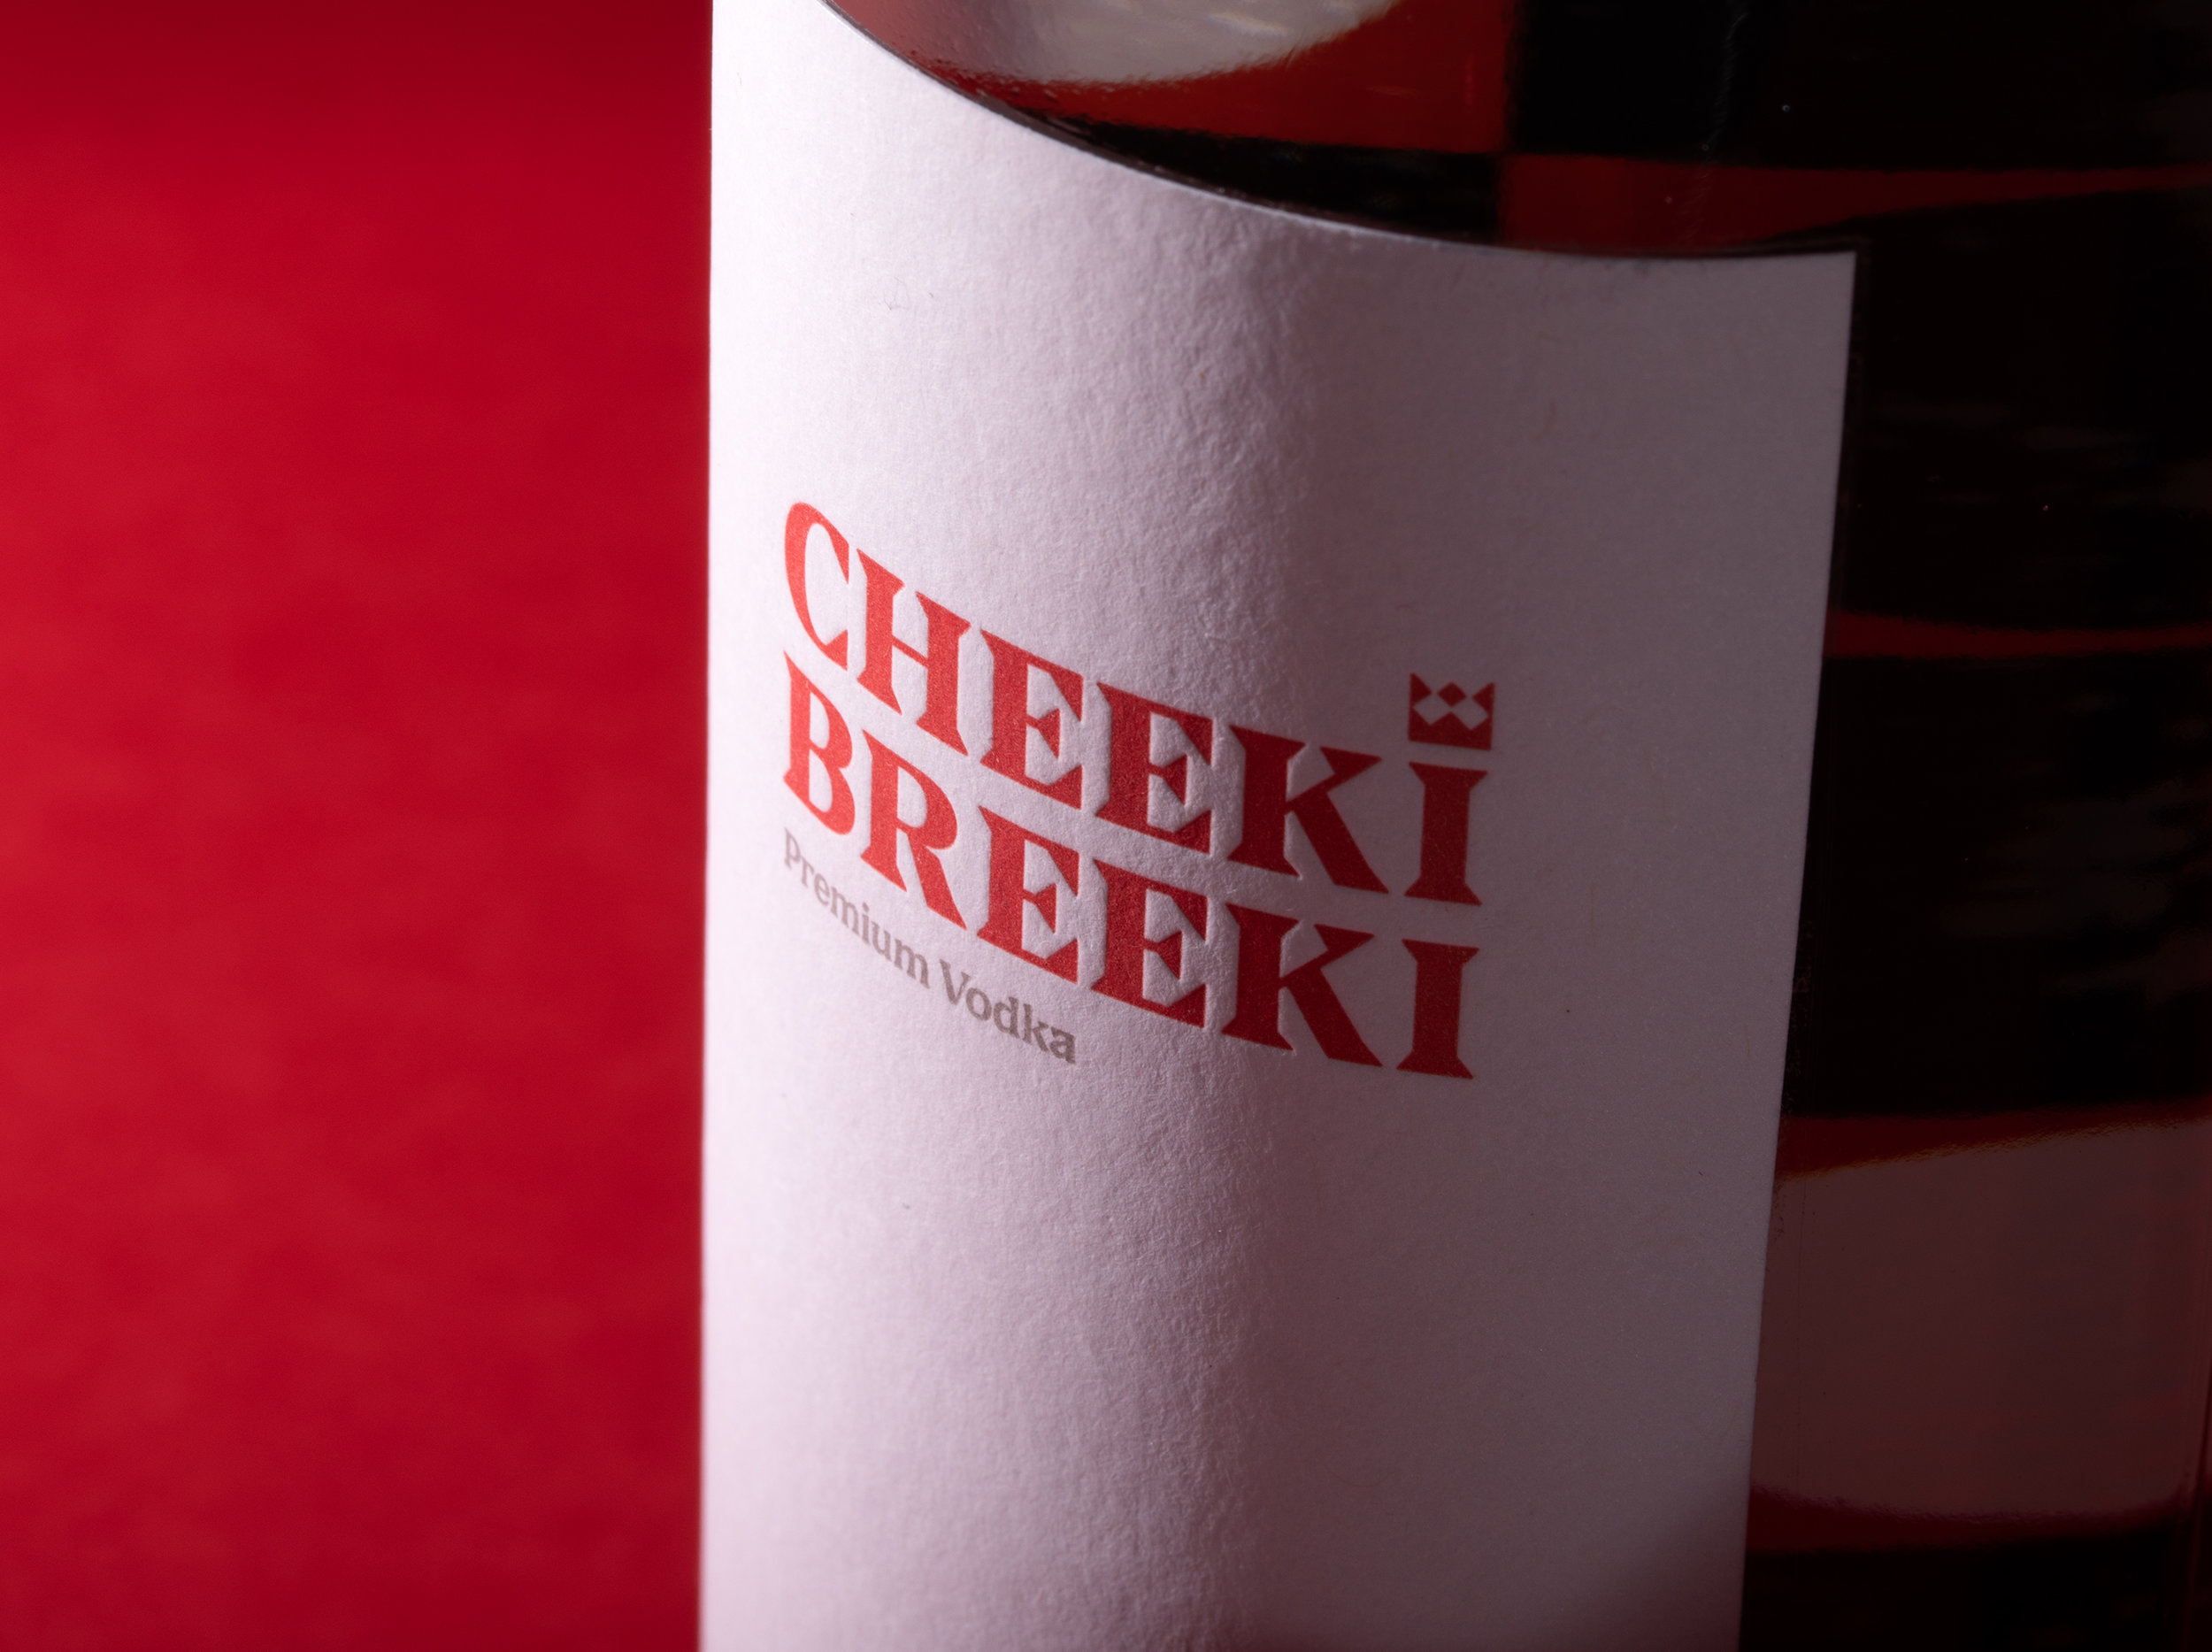 Cheeki Breeki Vodka Bottle LetterPress Label Closeup